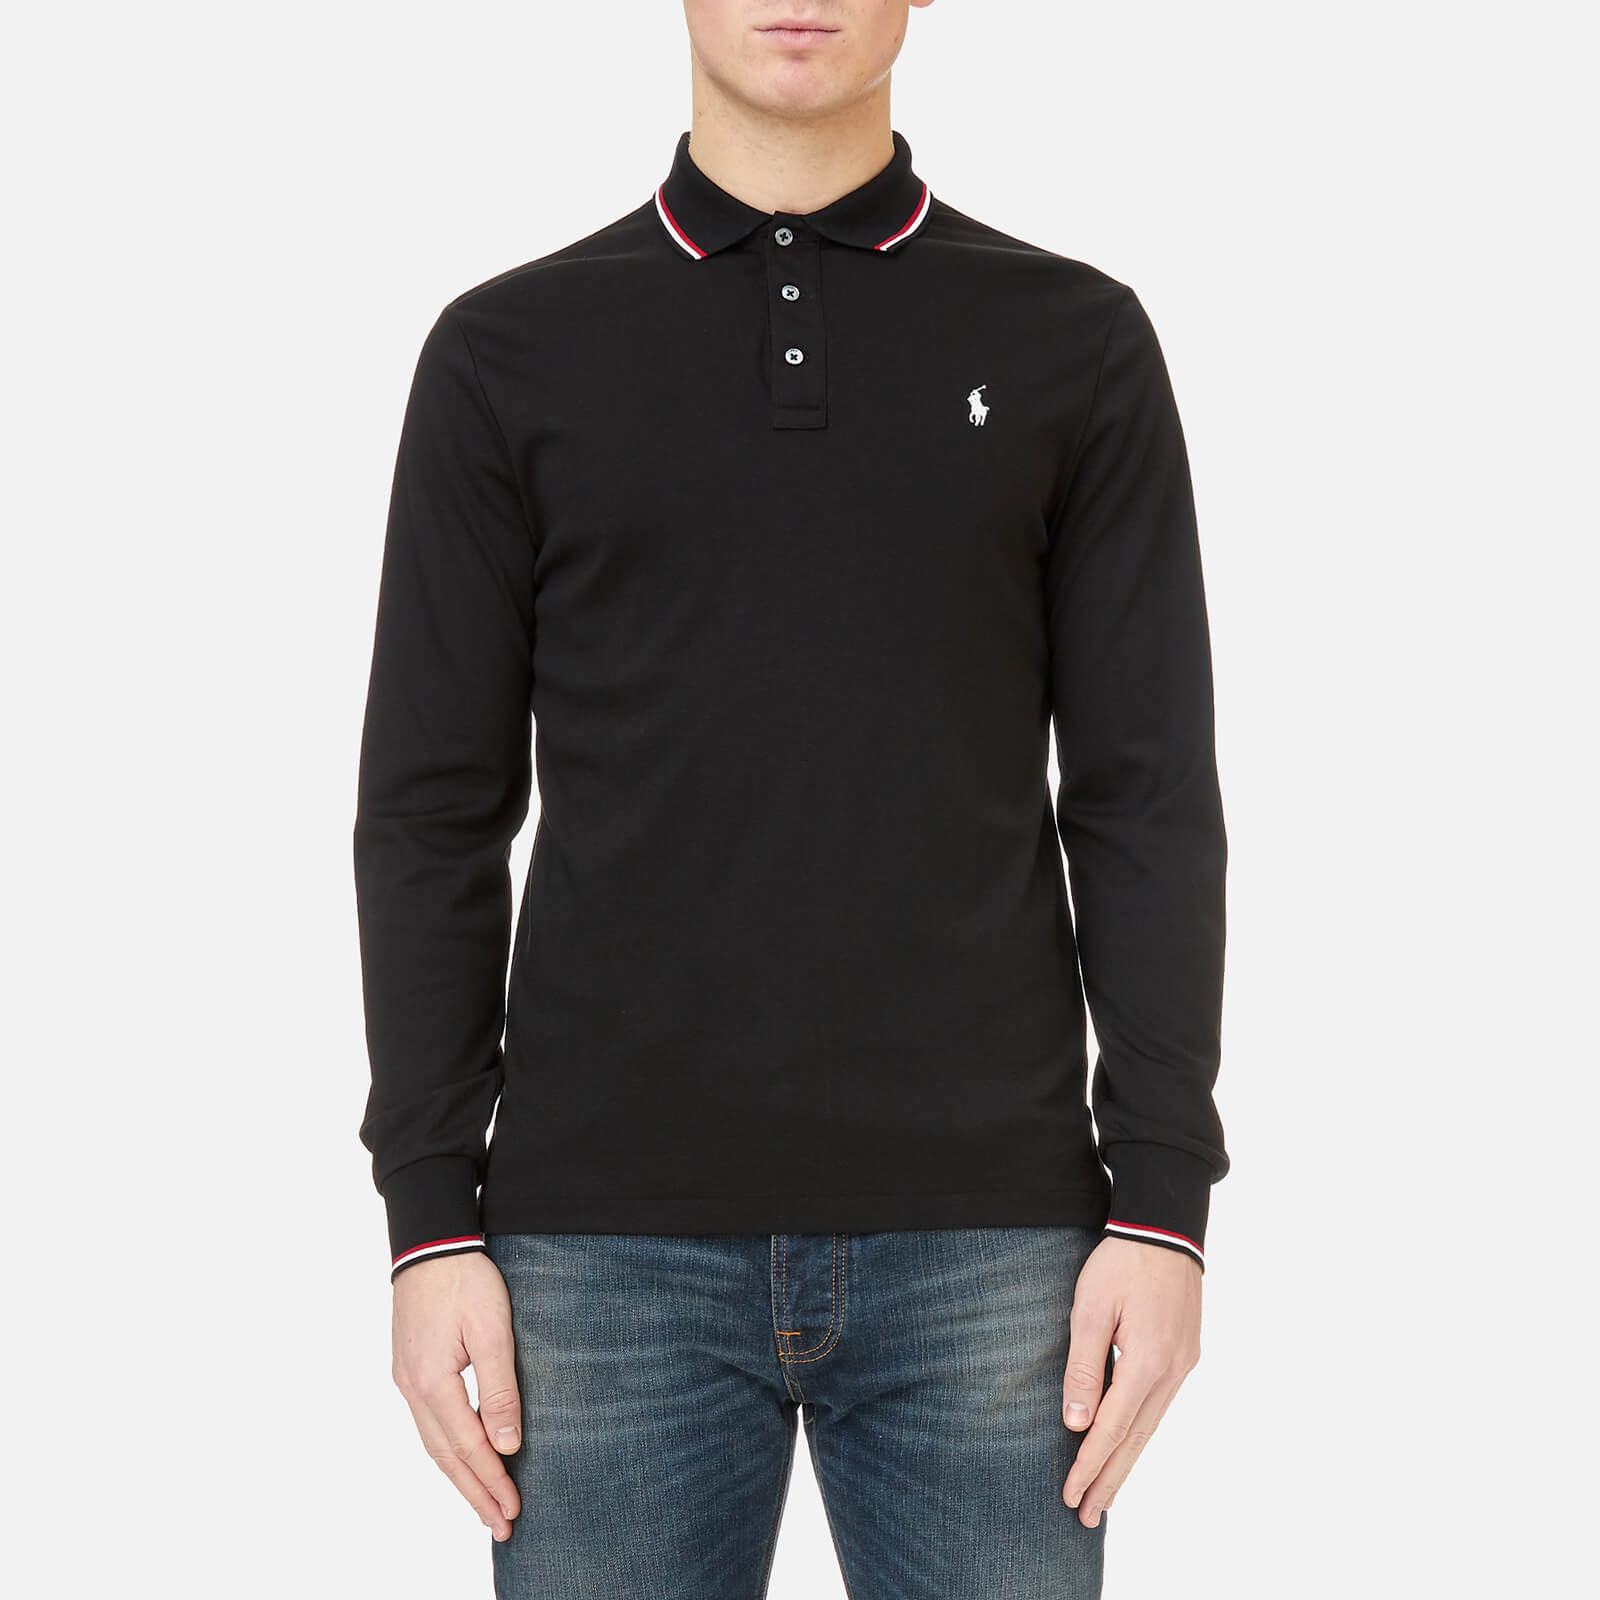 270bfd44 Polo Ralph Lauren Men's Long Sleeve Pima Tipped Polo Shirt - Black - Free  UK Delivery over £50